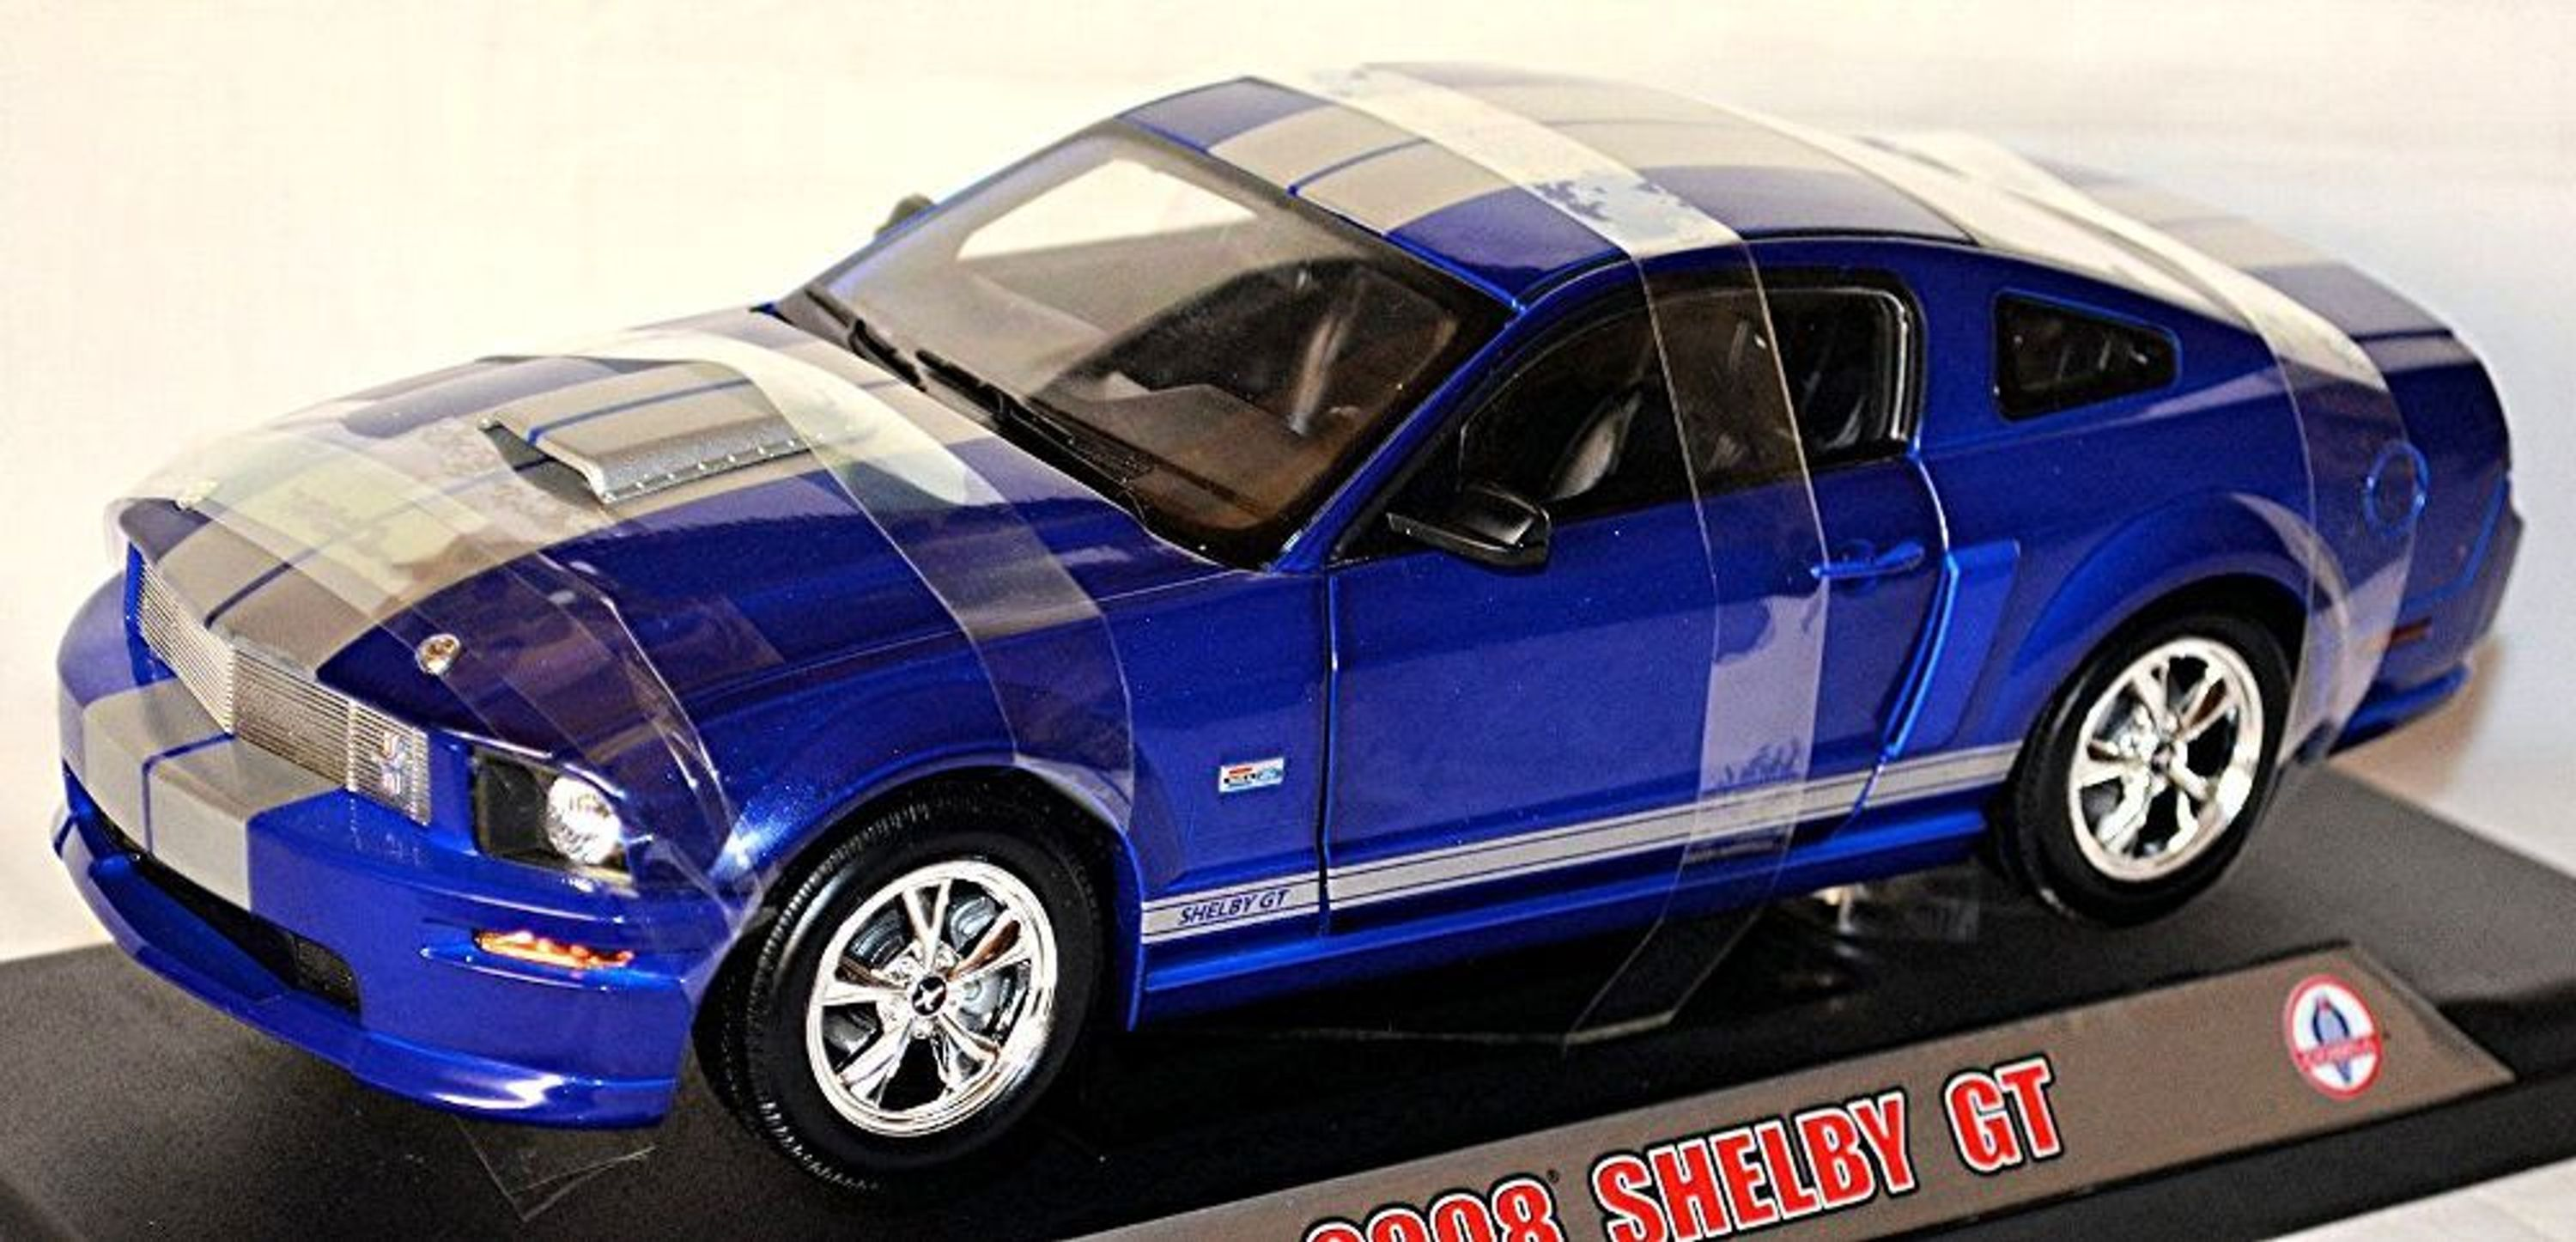 shelby gt coupe ford mustang v 2008 blau blue 1 18 shelby. Black Bedroom Furniture Sets. Home Design Ideas